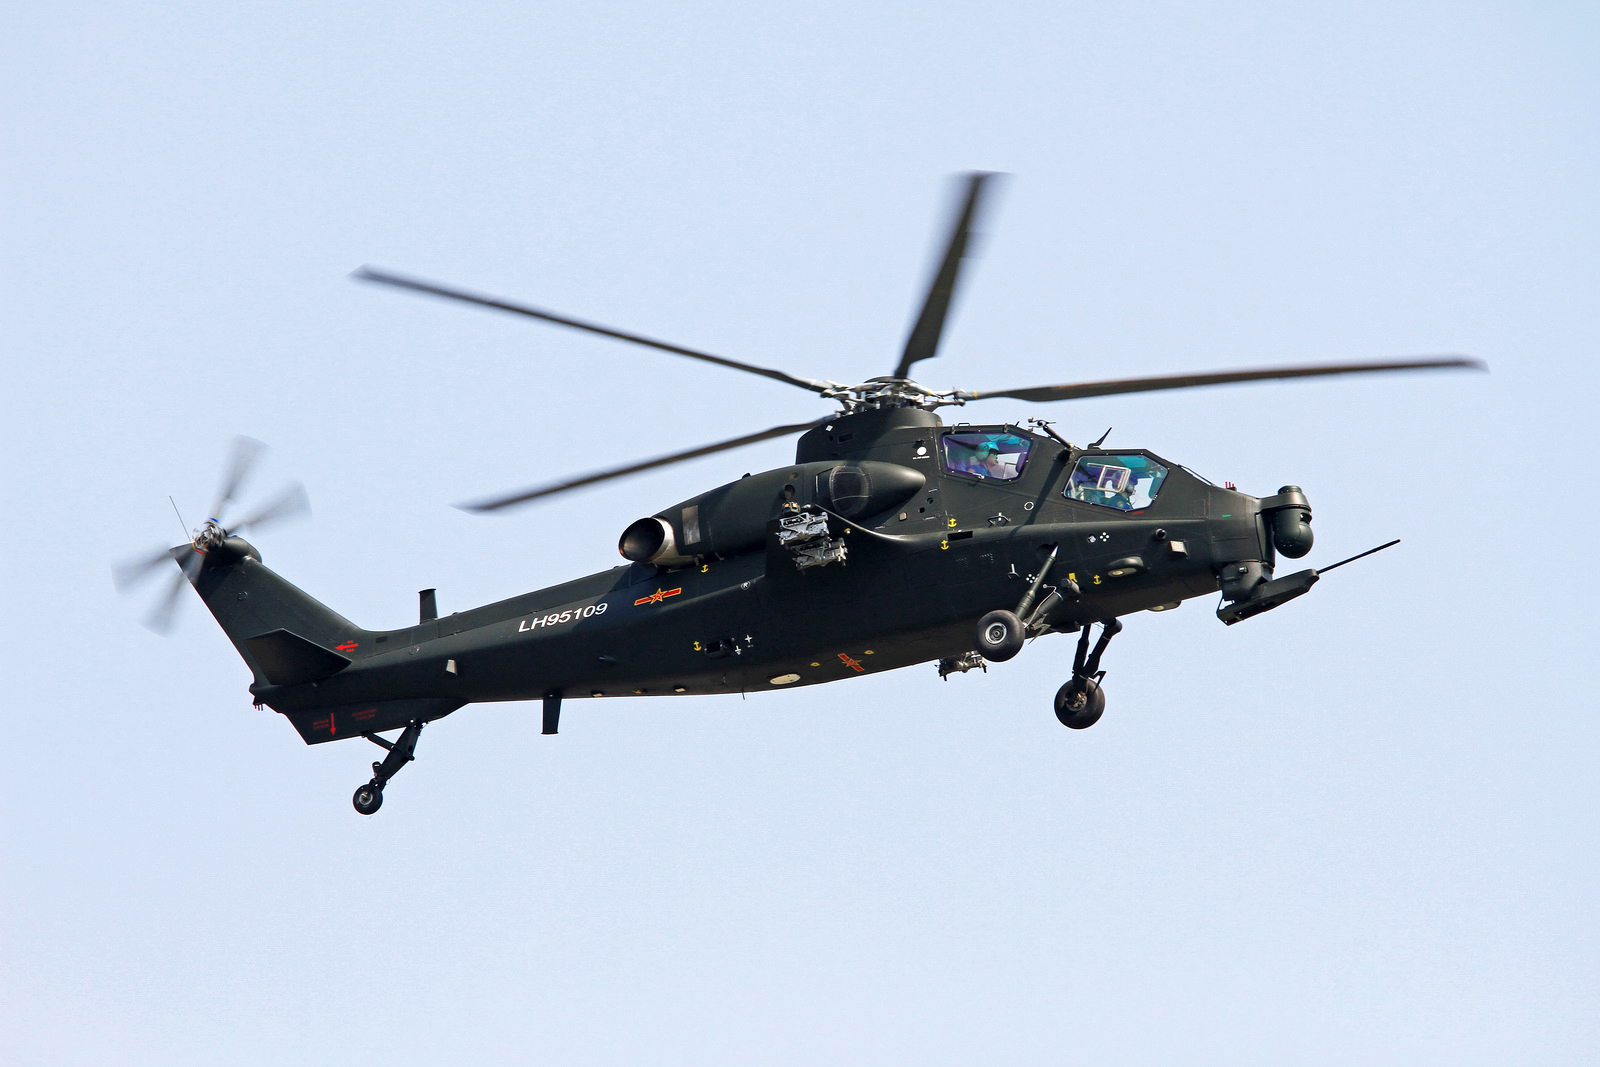 chine Z-10+Zhi-10+%2528Z-10%2529+attack+helicopter+People%2527s+Liberation+Army+%2528PLA%2529+gunship+has+been+developed+by+Changhe+Aircraft+Industries+Group+%2528CAIG%2529+and+China+Helicopter+Research+and+Development+Institute+%2528CHRDI%2529%252C+missile++%25285%2529